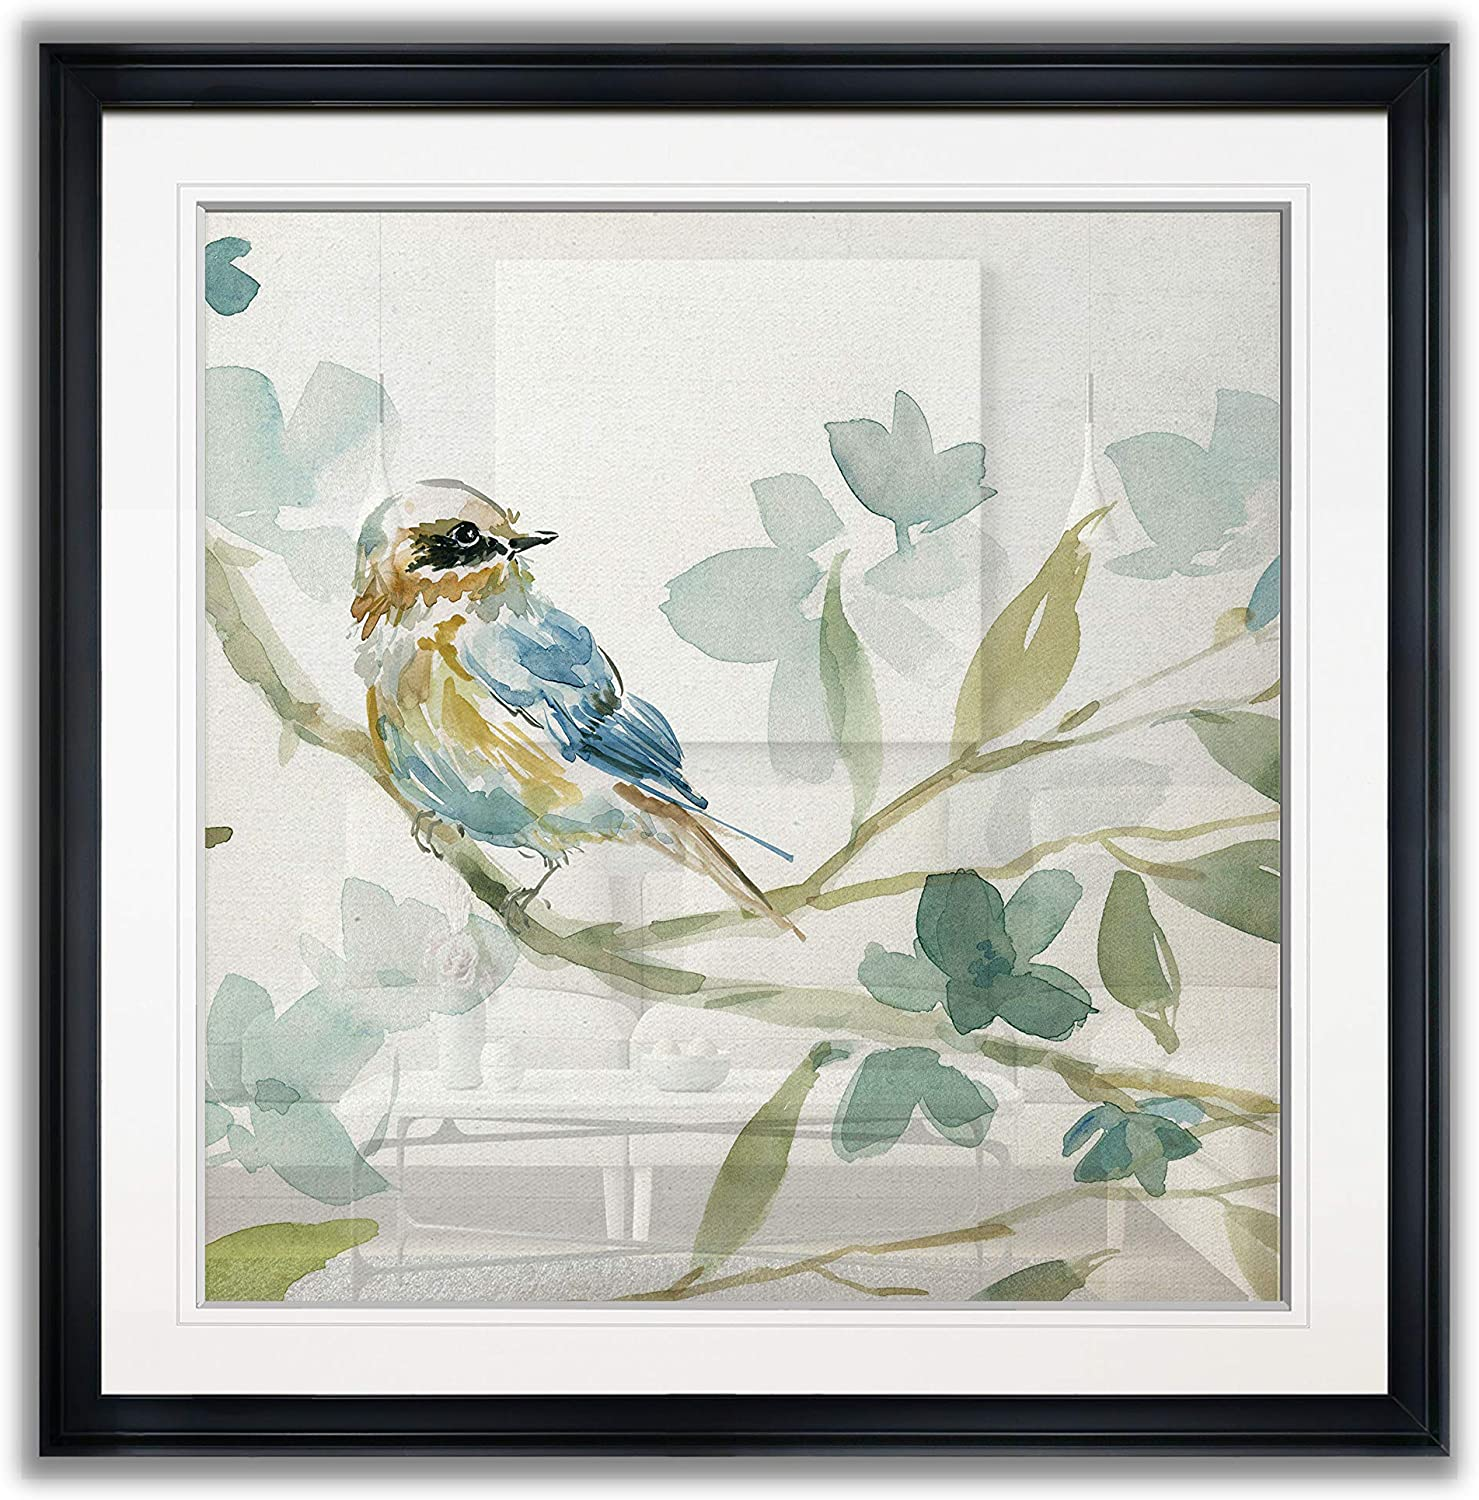 Renditions Gallery Spring Melody I Contemporary Artwork Bird Art Framed Scenic Giclee Canvas Prints Animals Wall Decor Painting, 16 x 16, Black